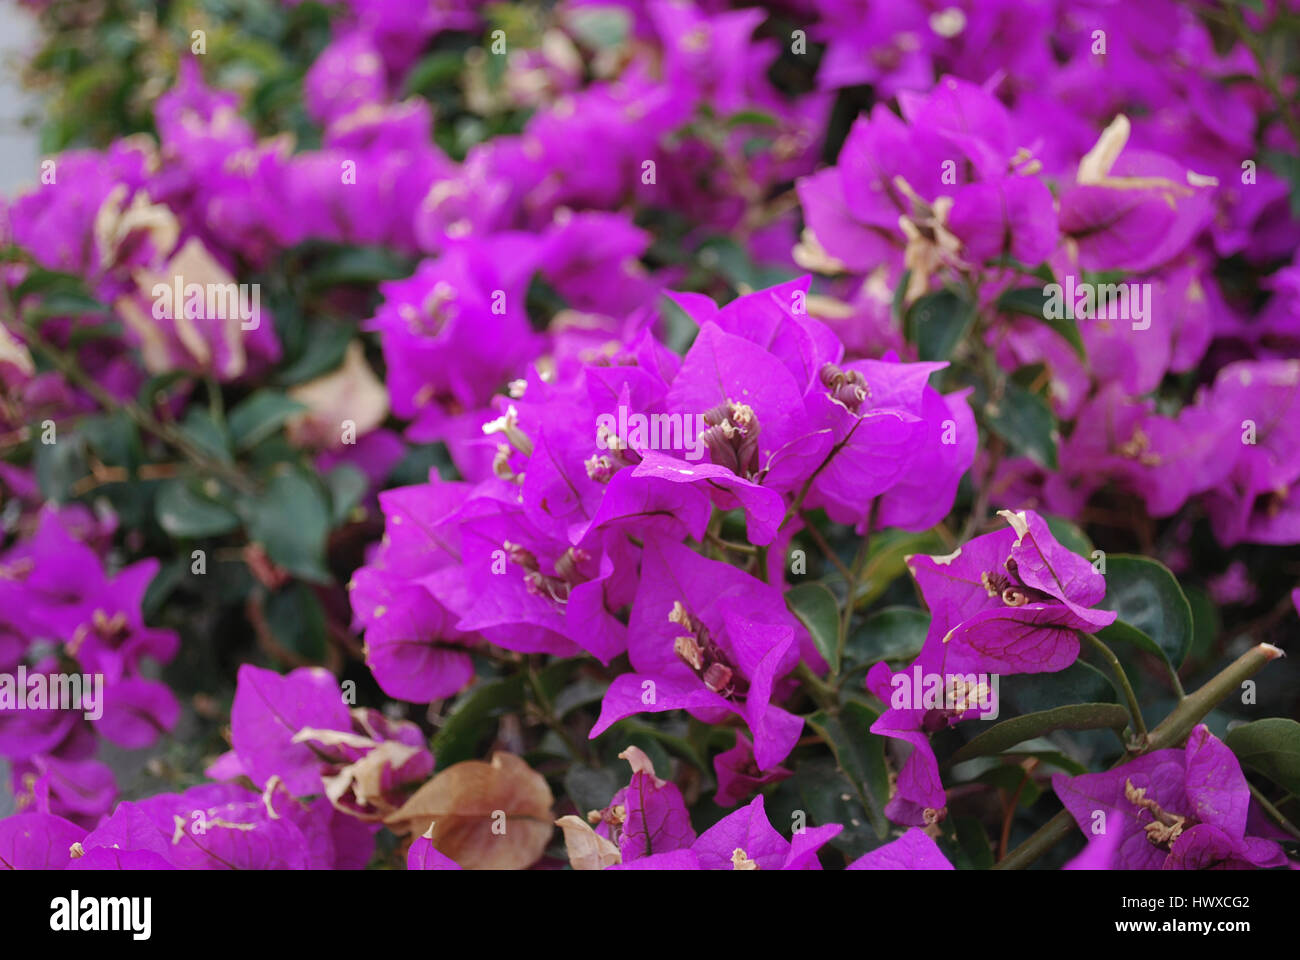 Bougainvillea Bushes With Purple Flower Like Spring Leaves Near Its